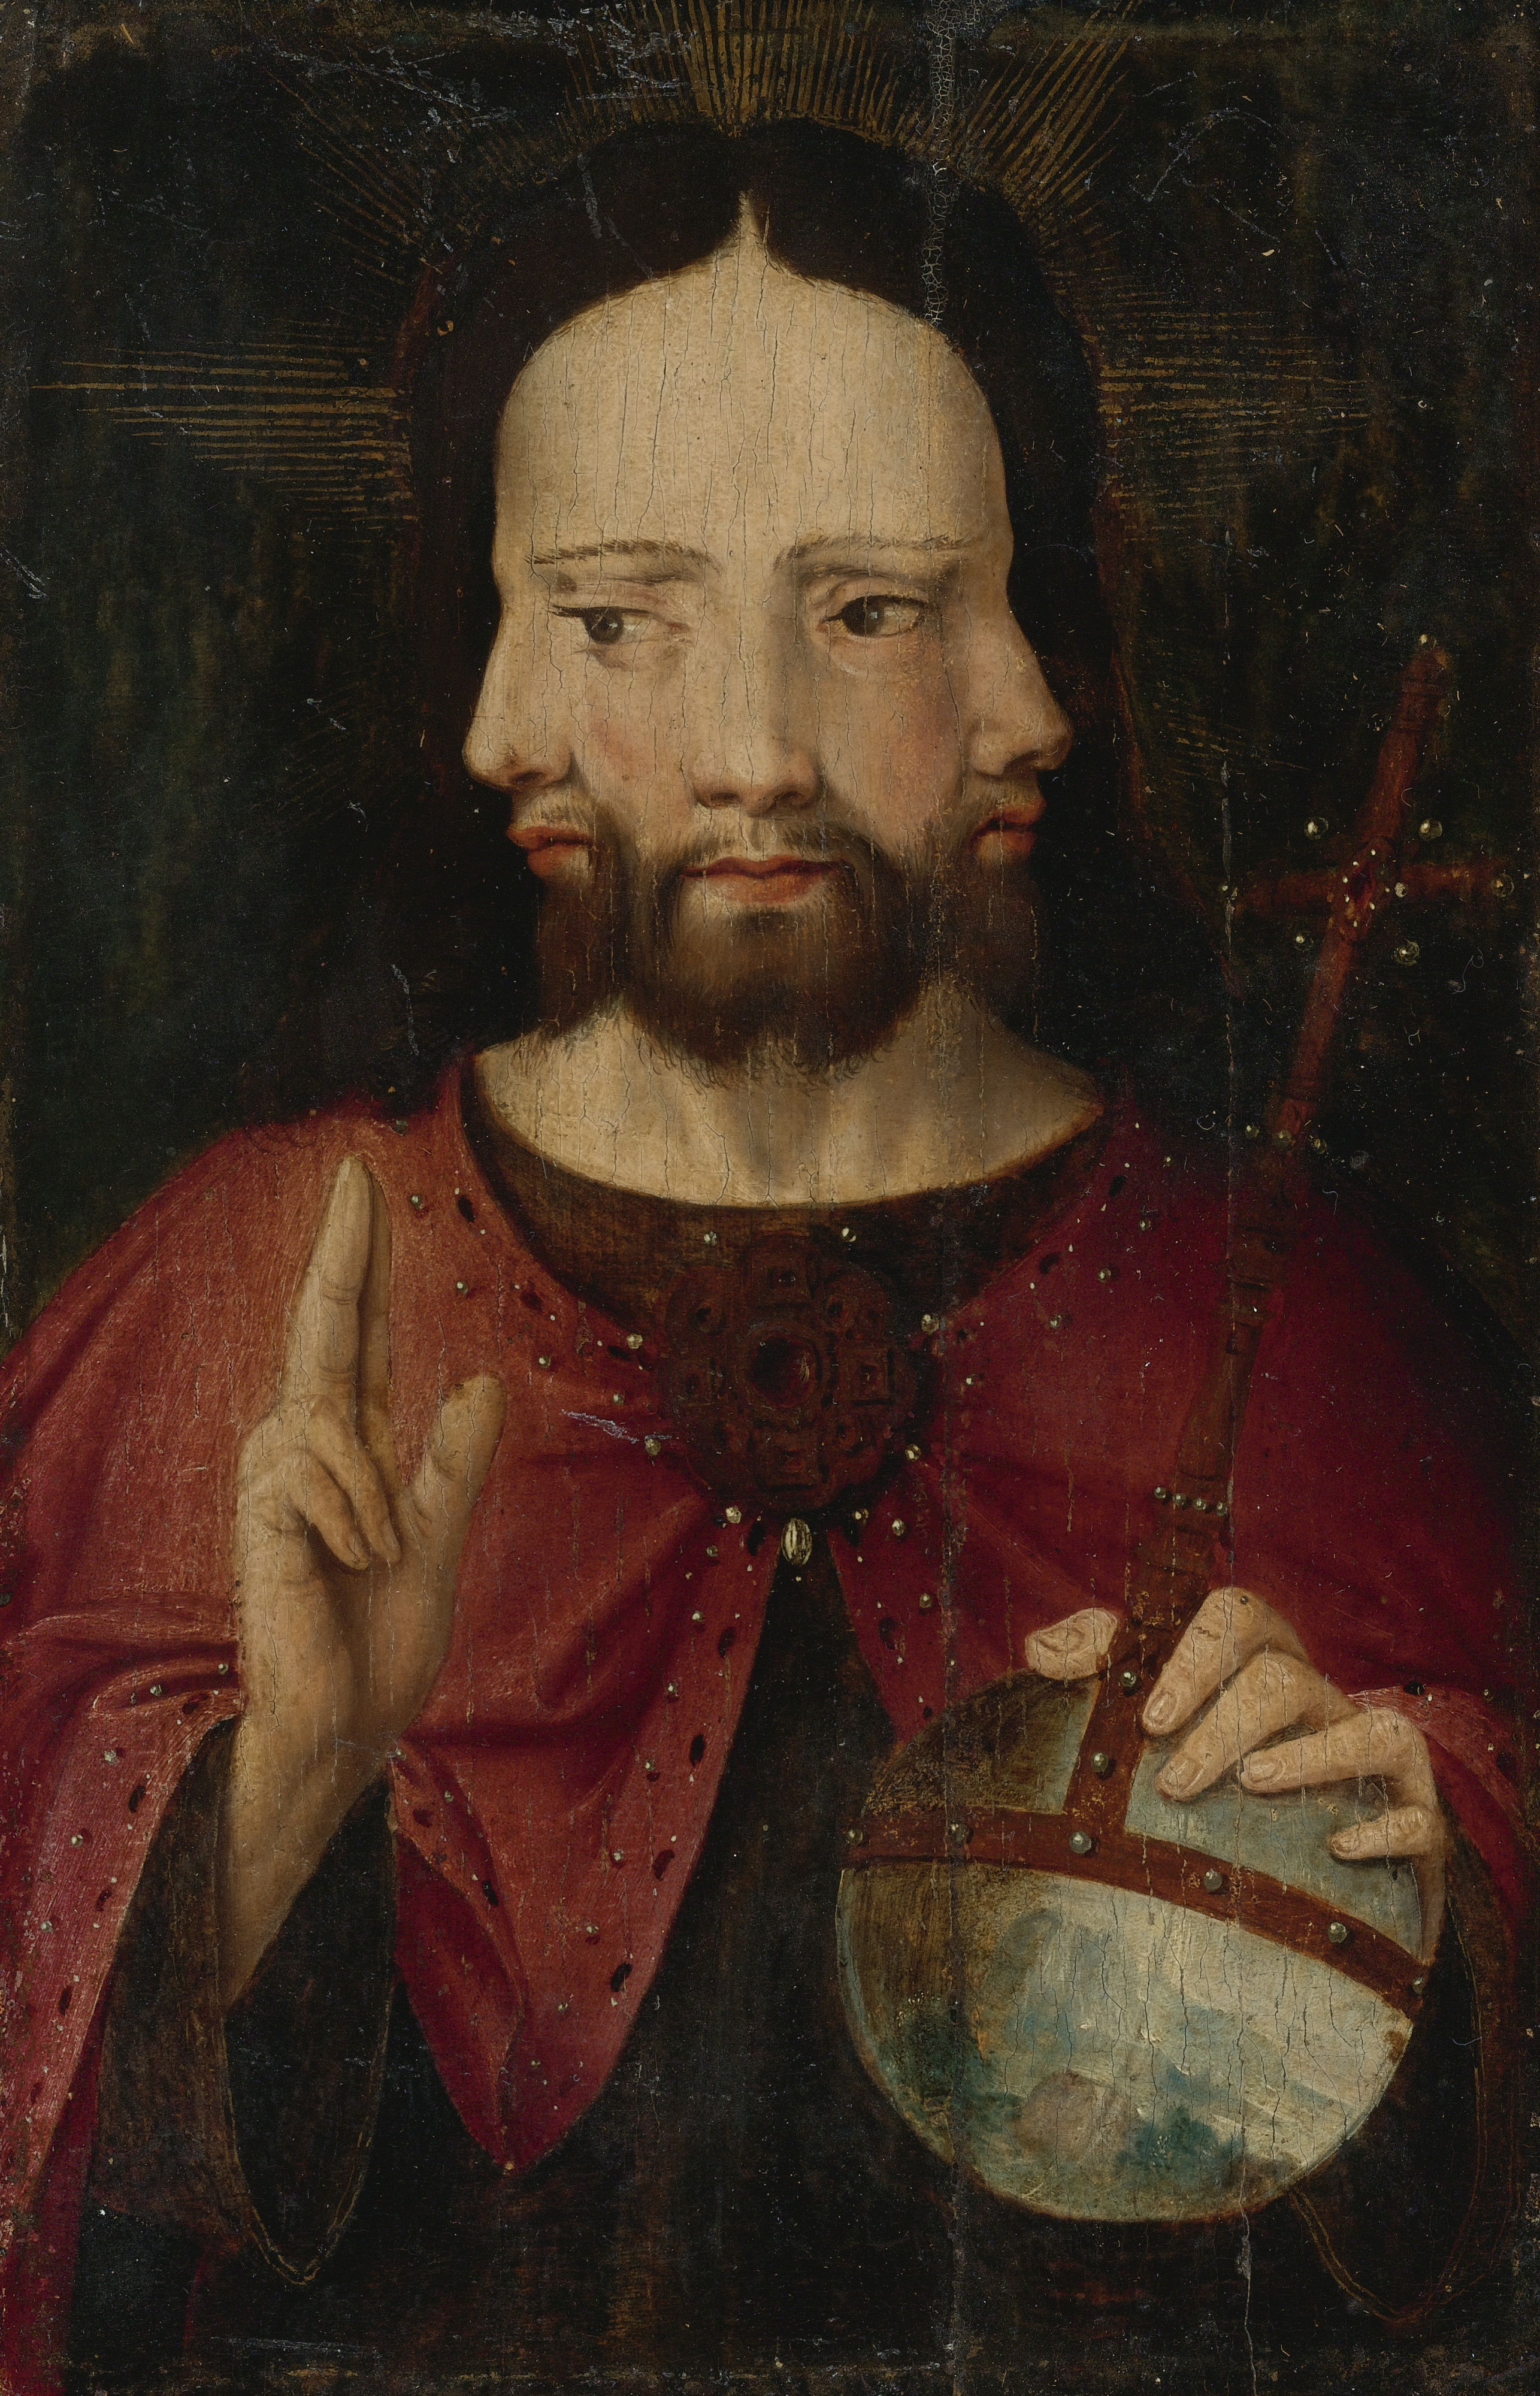 Christ with three faces